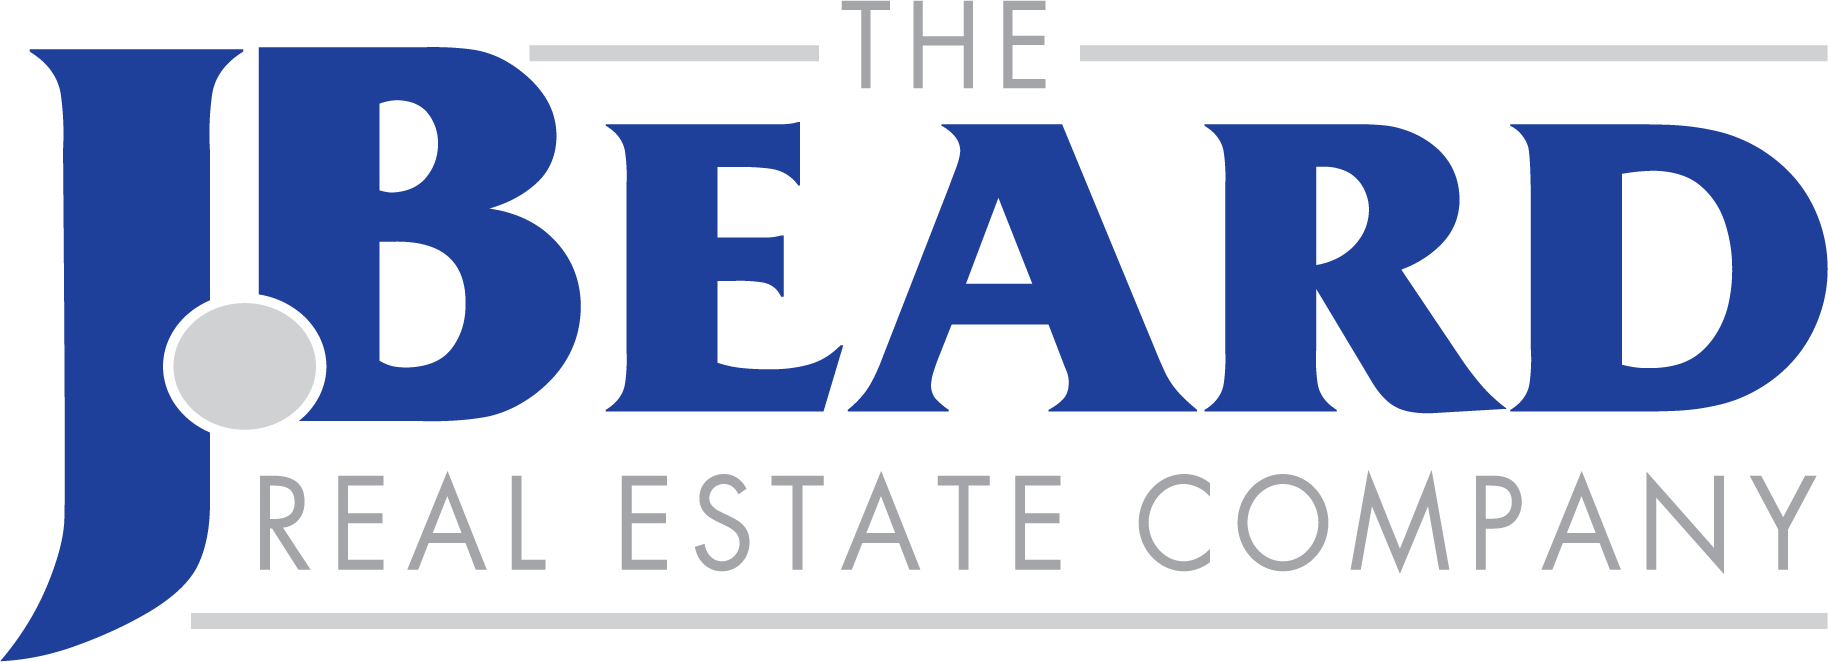 The J. Beard Real Estate Company - Your Commercial Real Estate Company